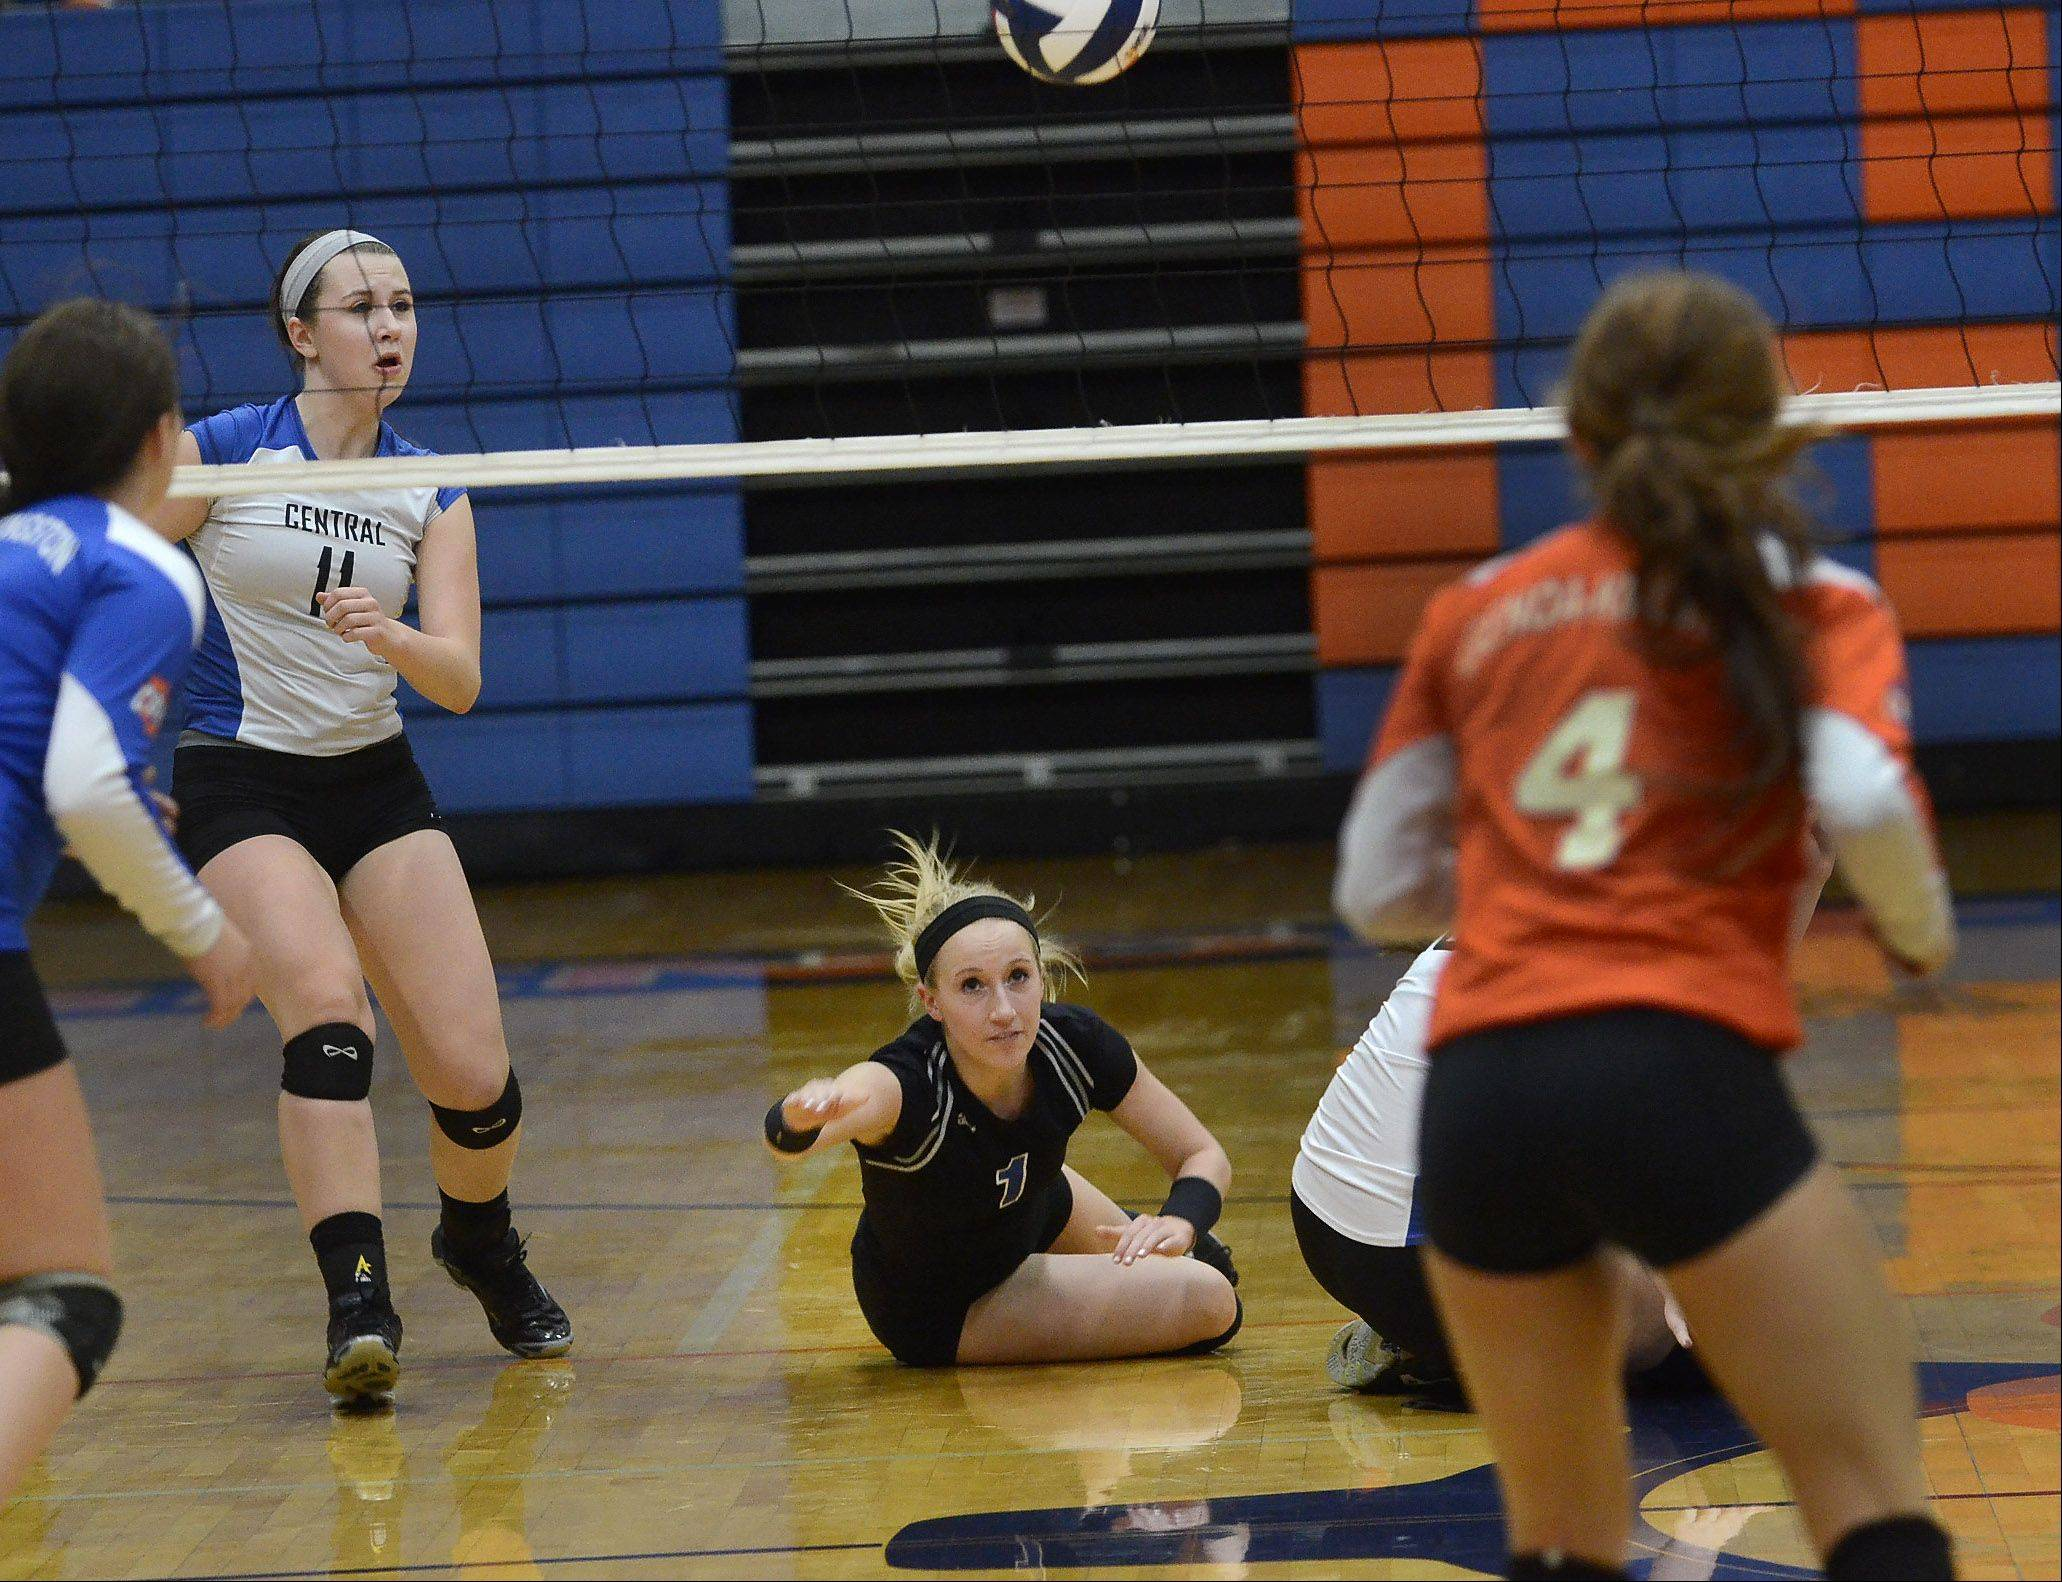 Central's Allie O'Reilly goes for the save as Burlington Central defeats Genoa-Kingston volleyball for Class 3A regional title.